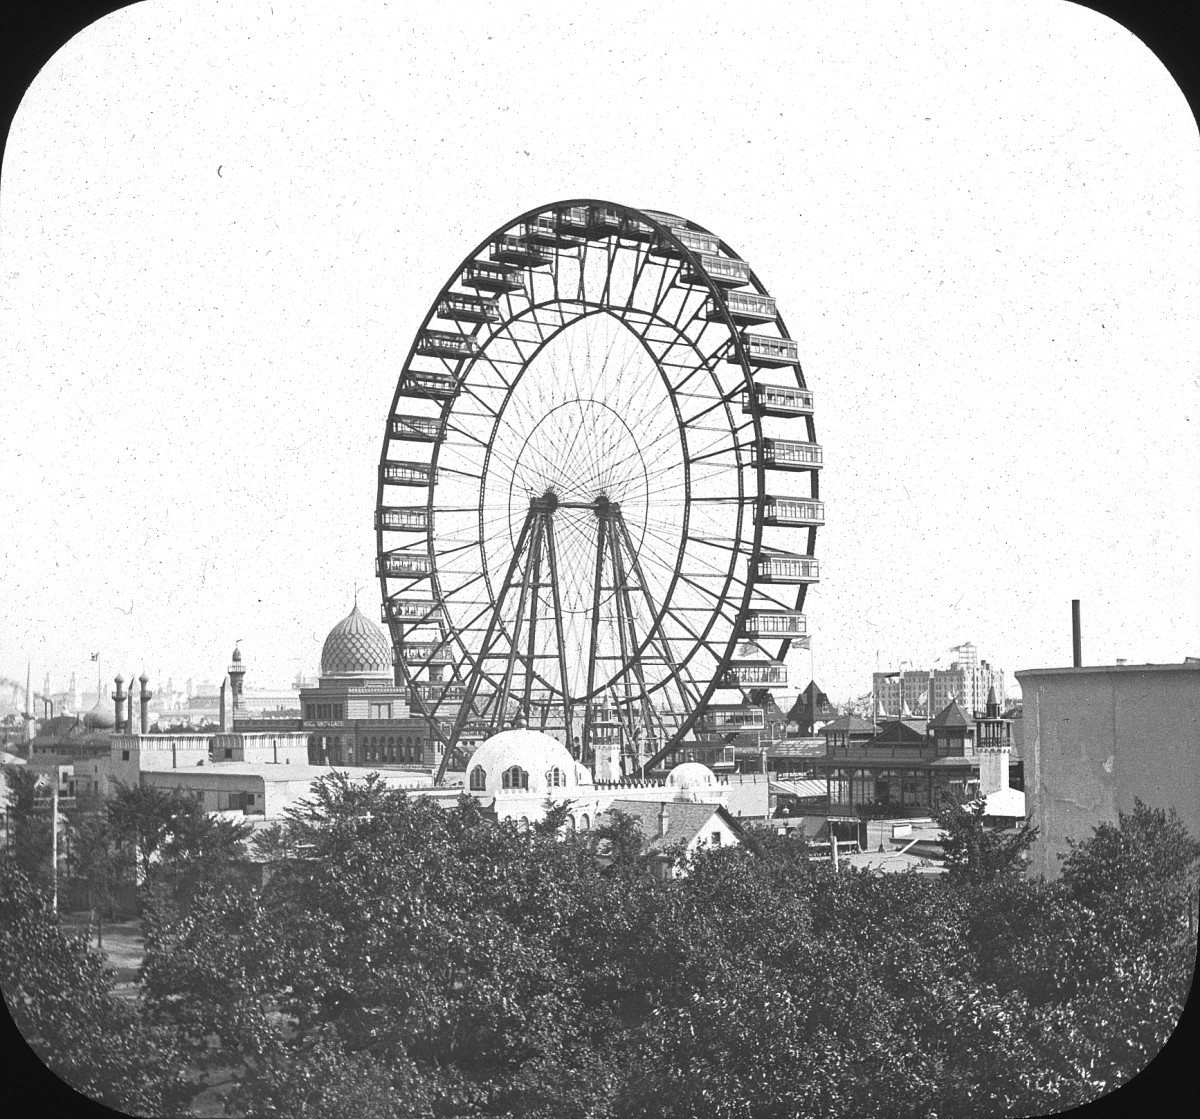 FERRIS WHEEL, COLUMBIAN EXPOSITION